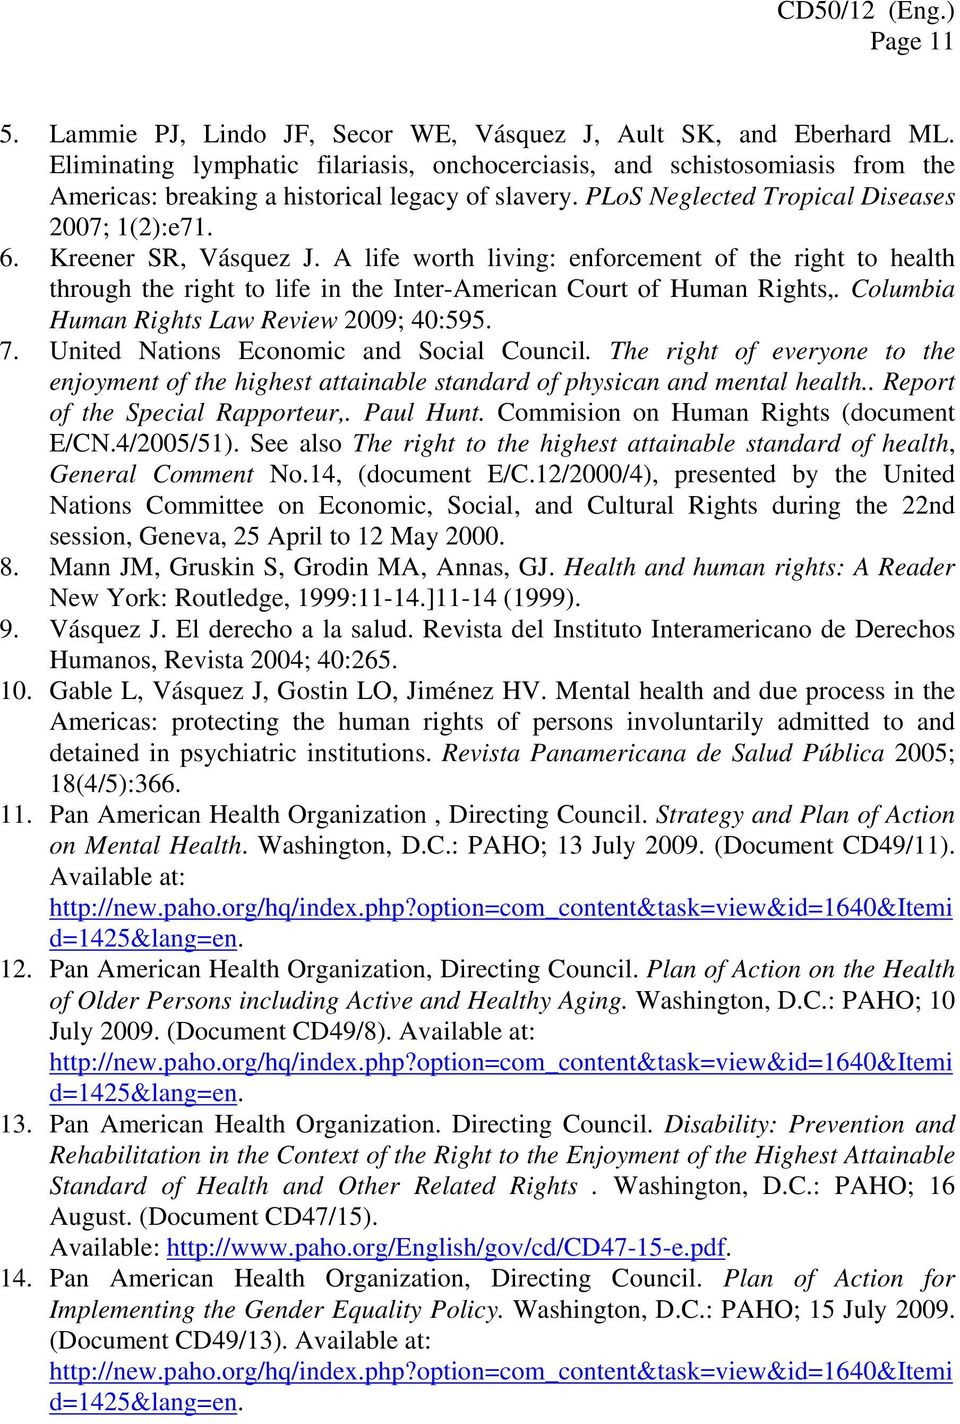 Kreener SR, Vásquez J. A life worth living: enforcement of the right to health through the right to life in the Inter-American Court of Human Rights,. Columbia Human Rights Law Review 2009; 40:595. 7.